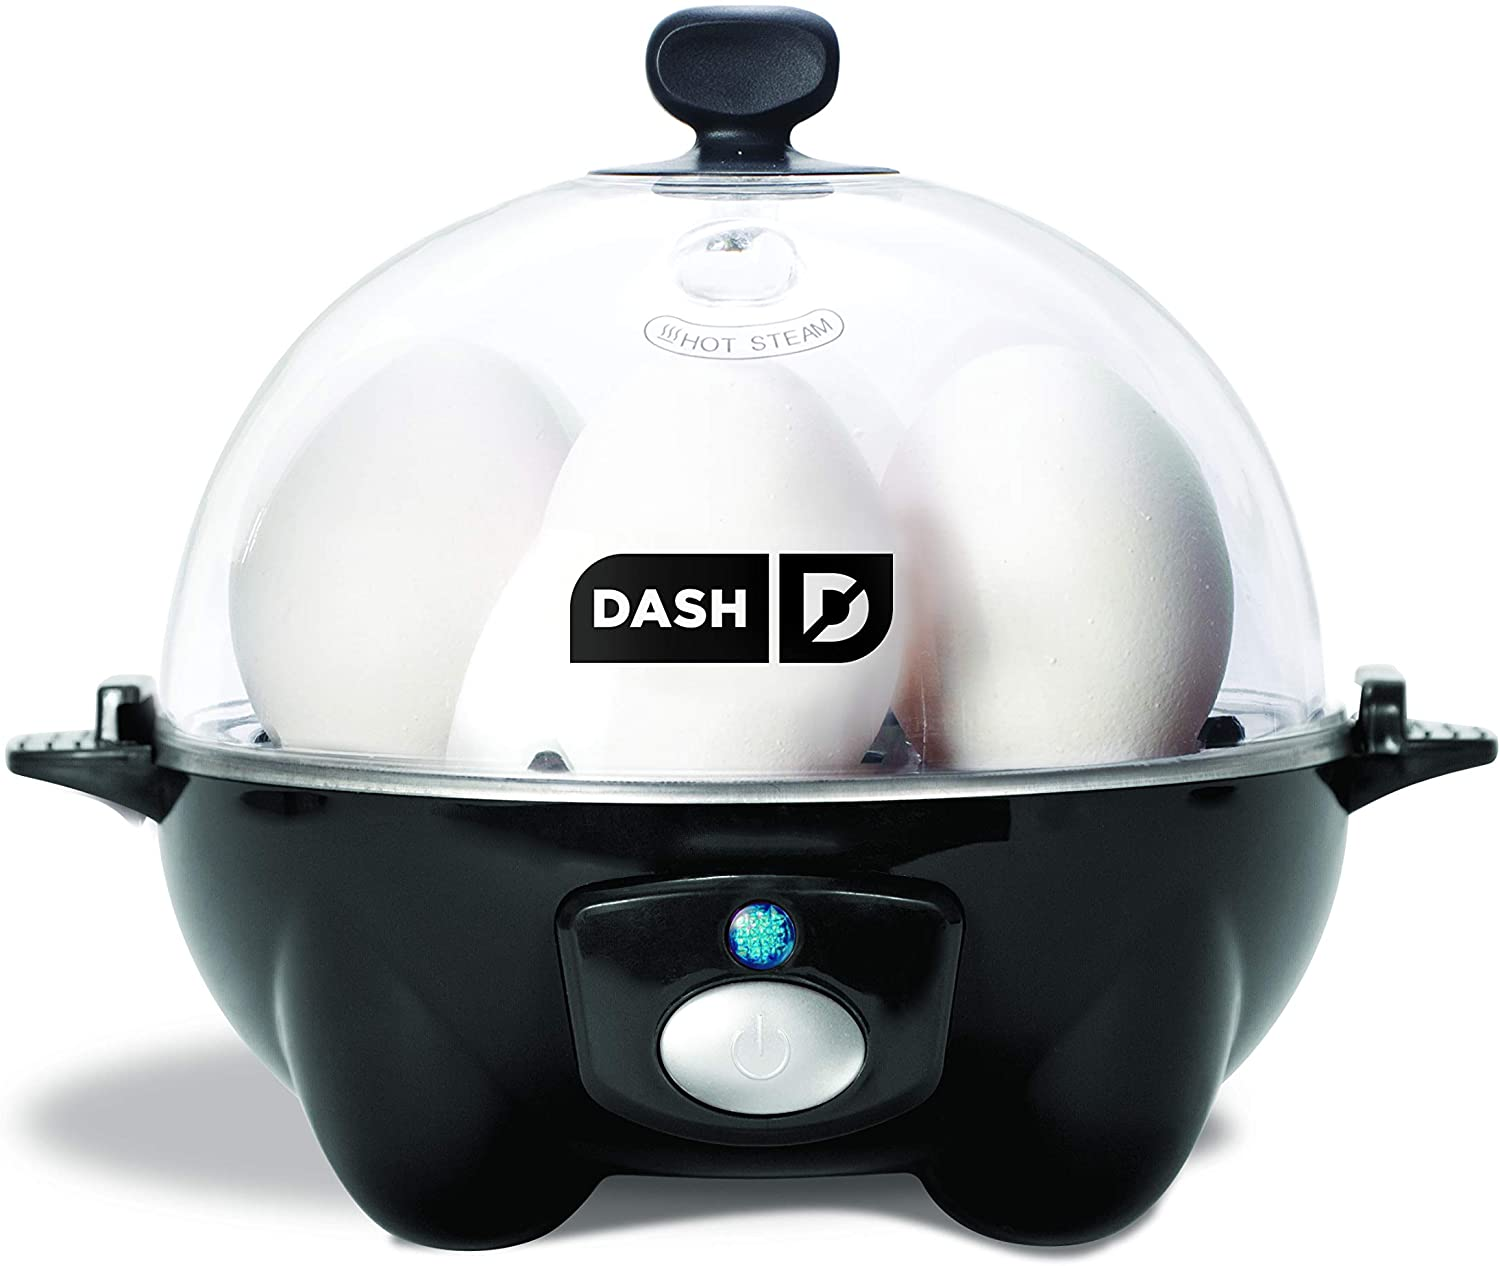 DASH rapid egg cooker small appliance